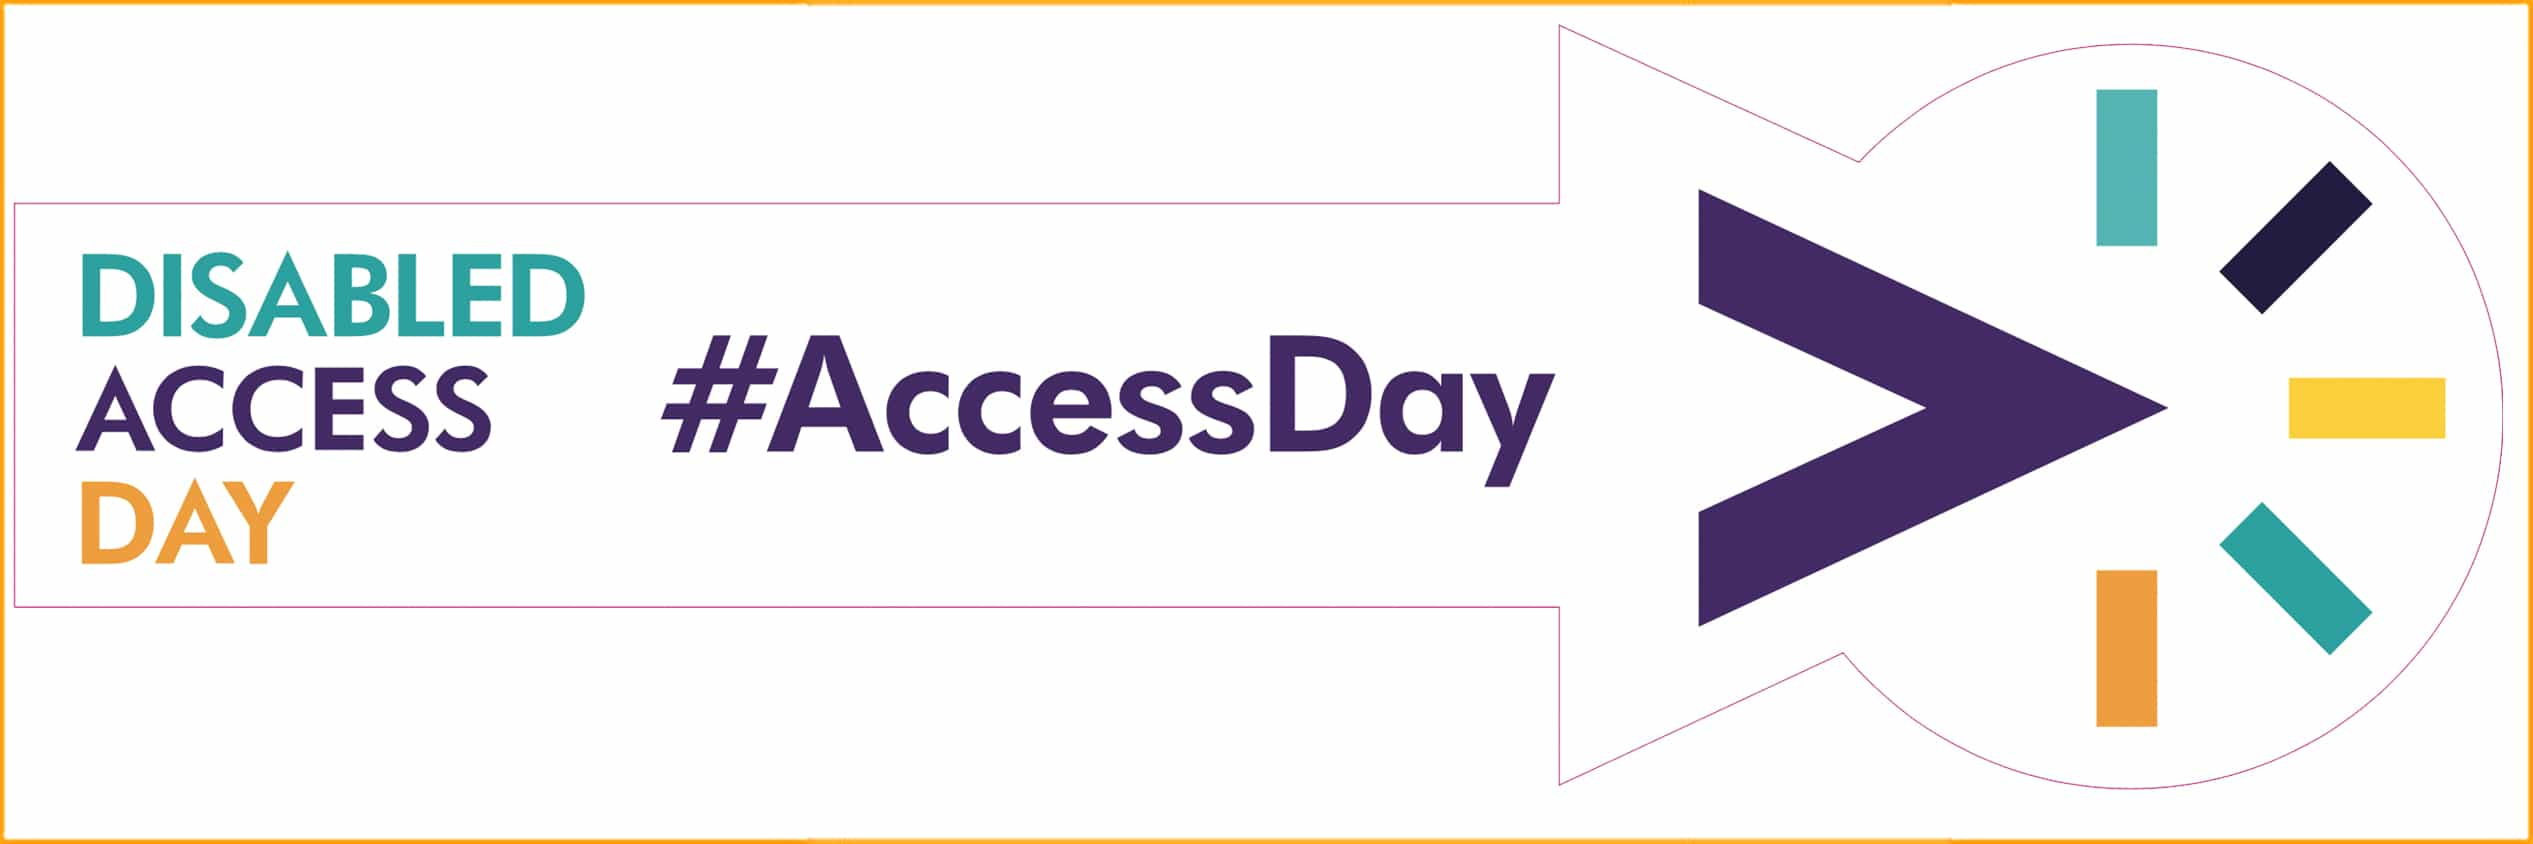 arrors - Disabled Access Day: An Important Event for Everyone